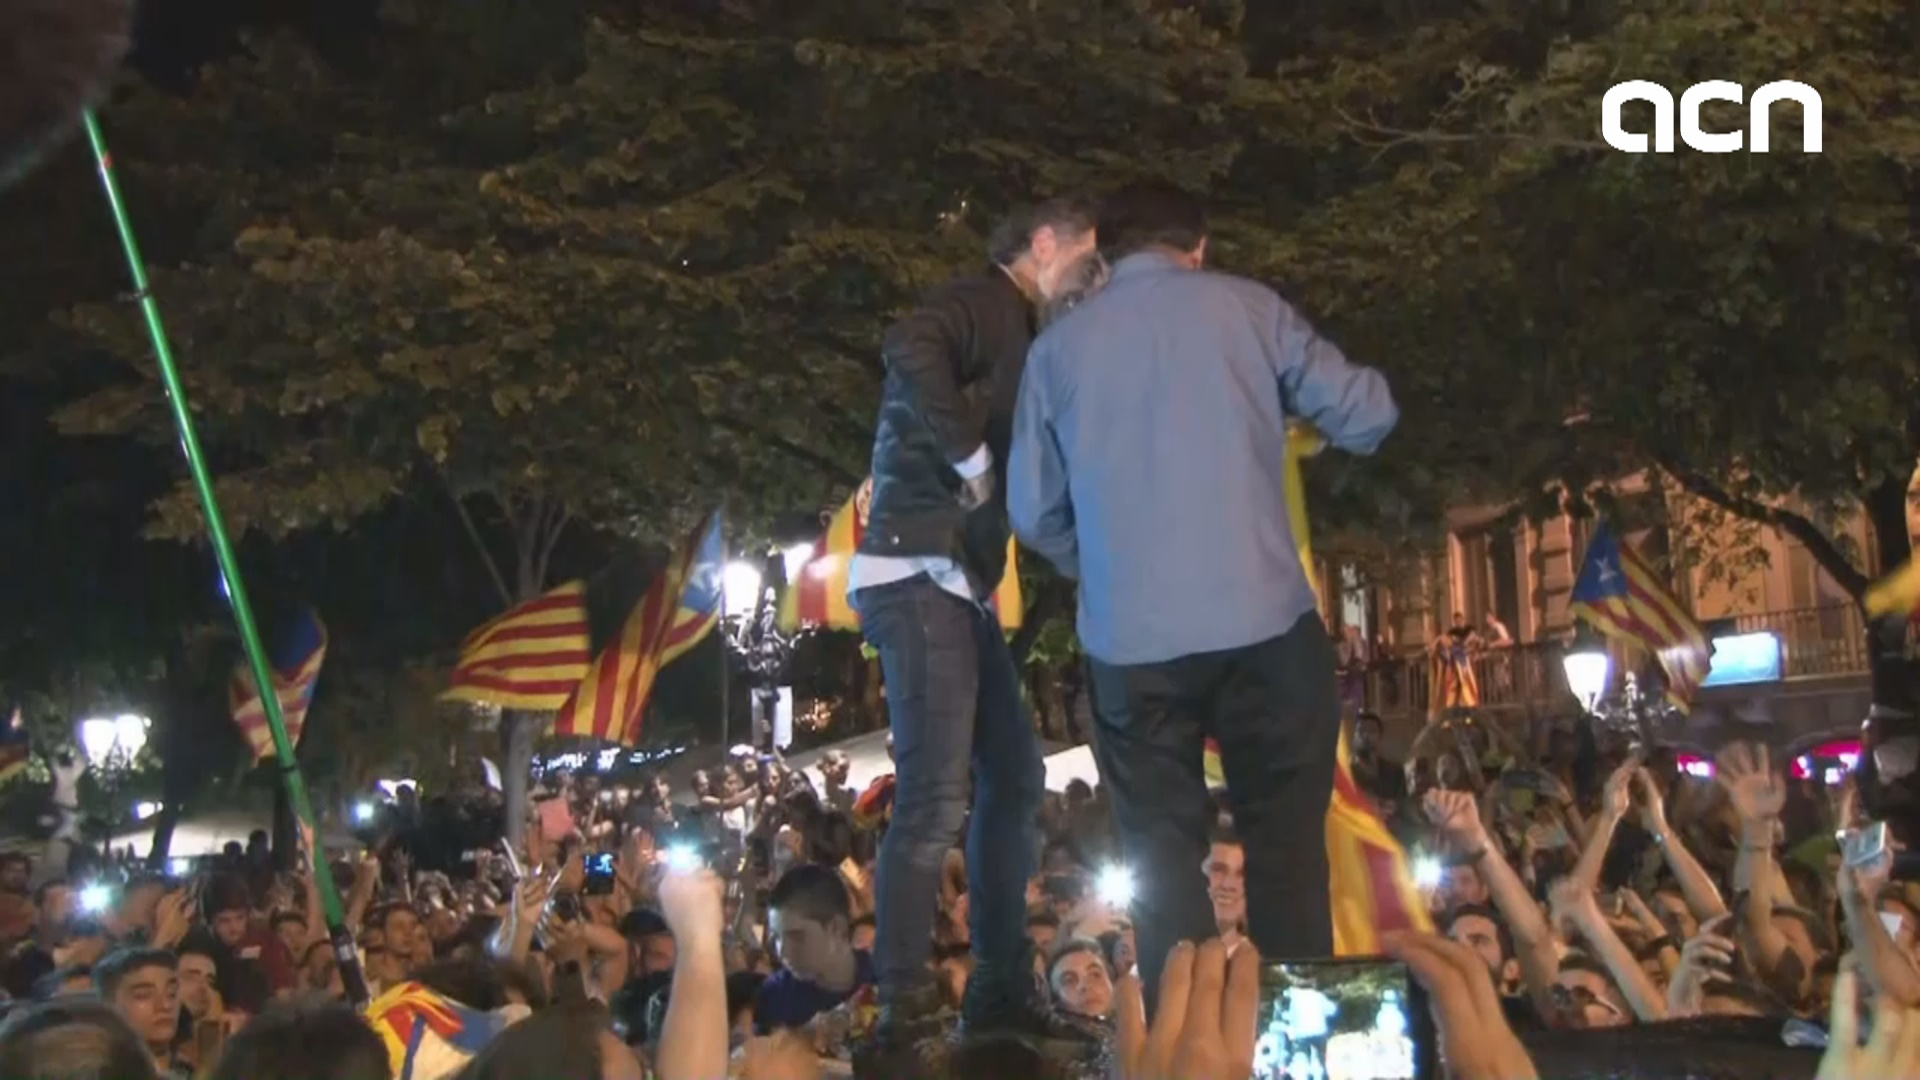 Unilateral independence no longer option for jailed Catalan leaders